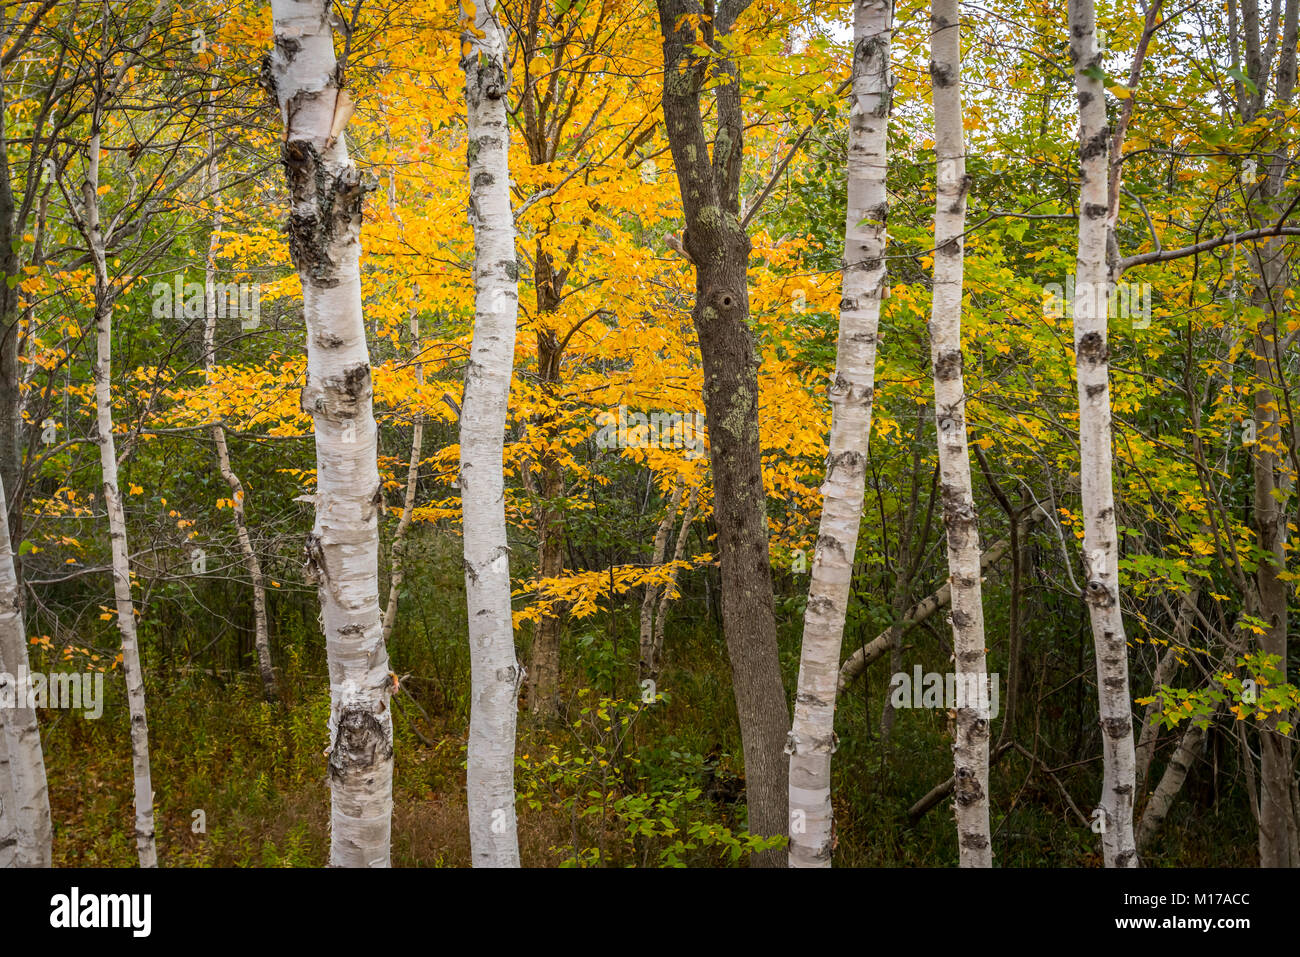 White Paper Birch Tree Trunks with autumn leaves changing colors - Stock Image